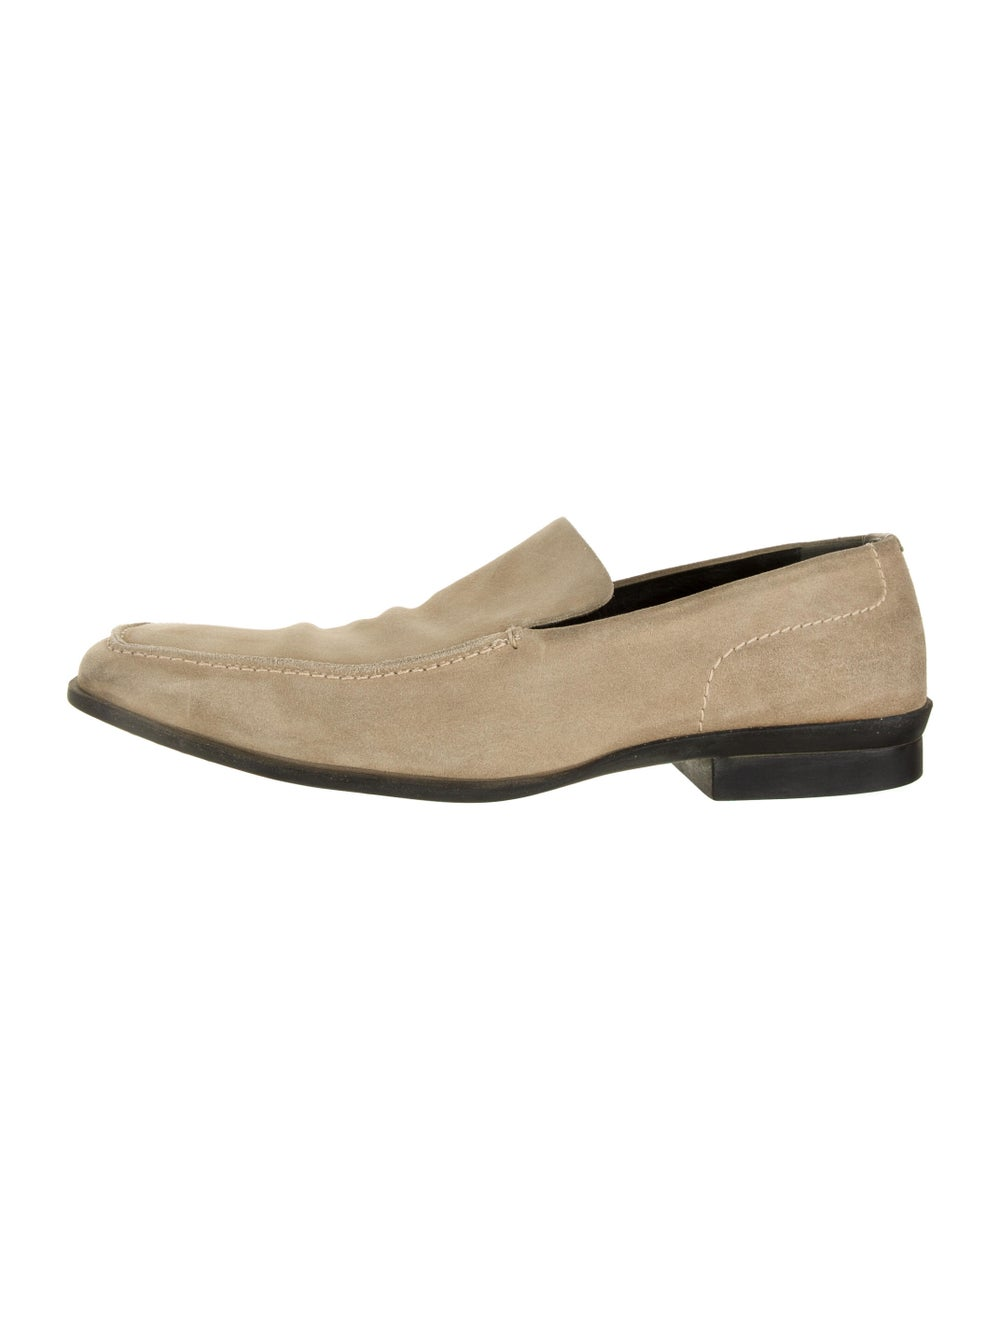 Gucci Suede Dress Loafers - image 1